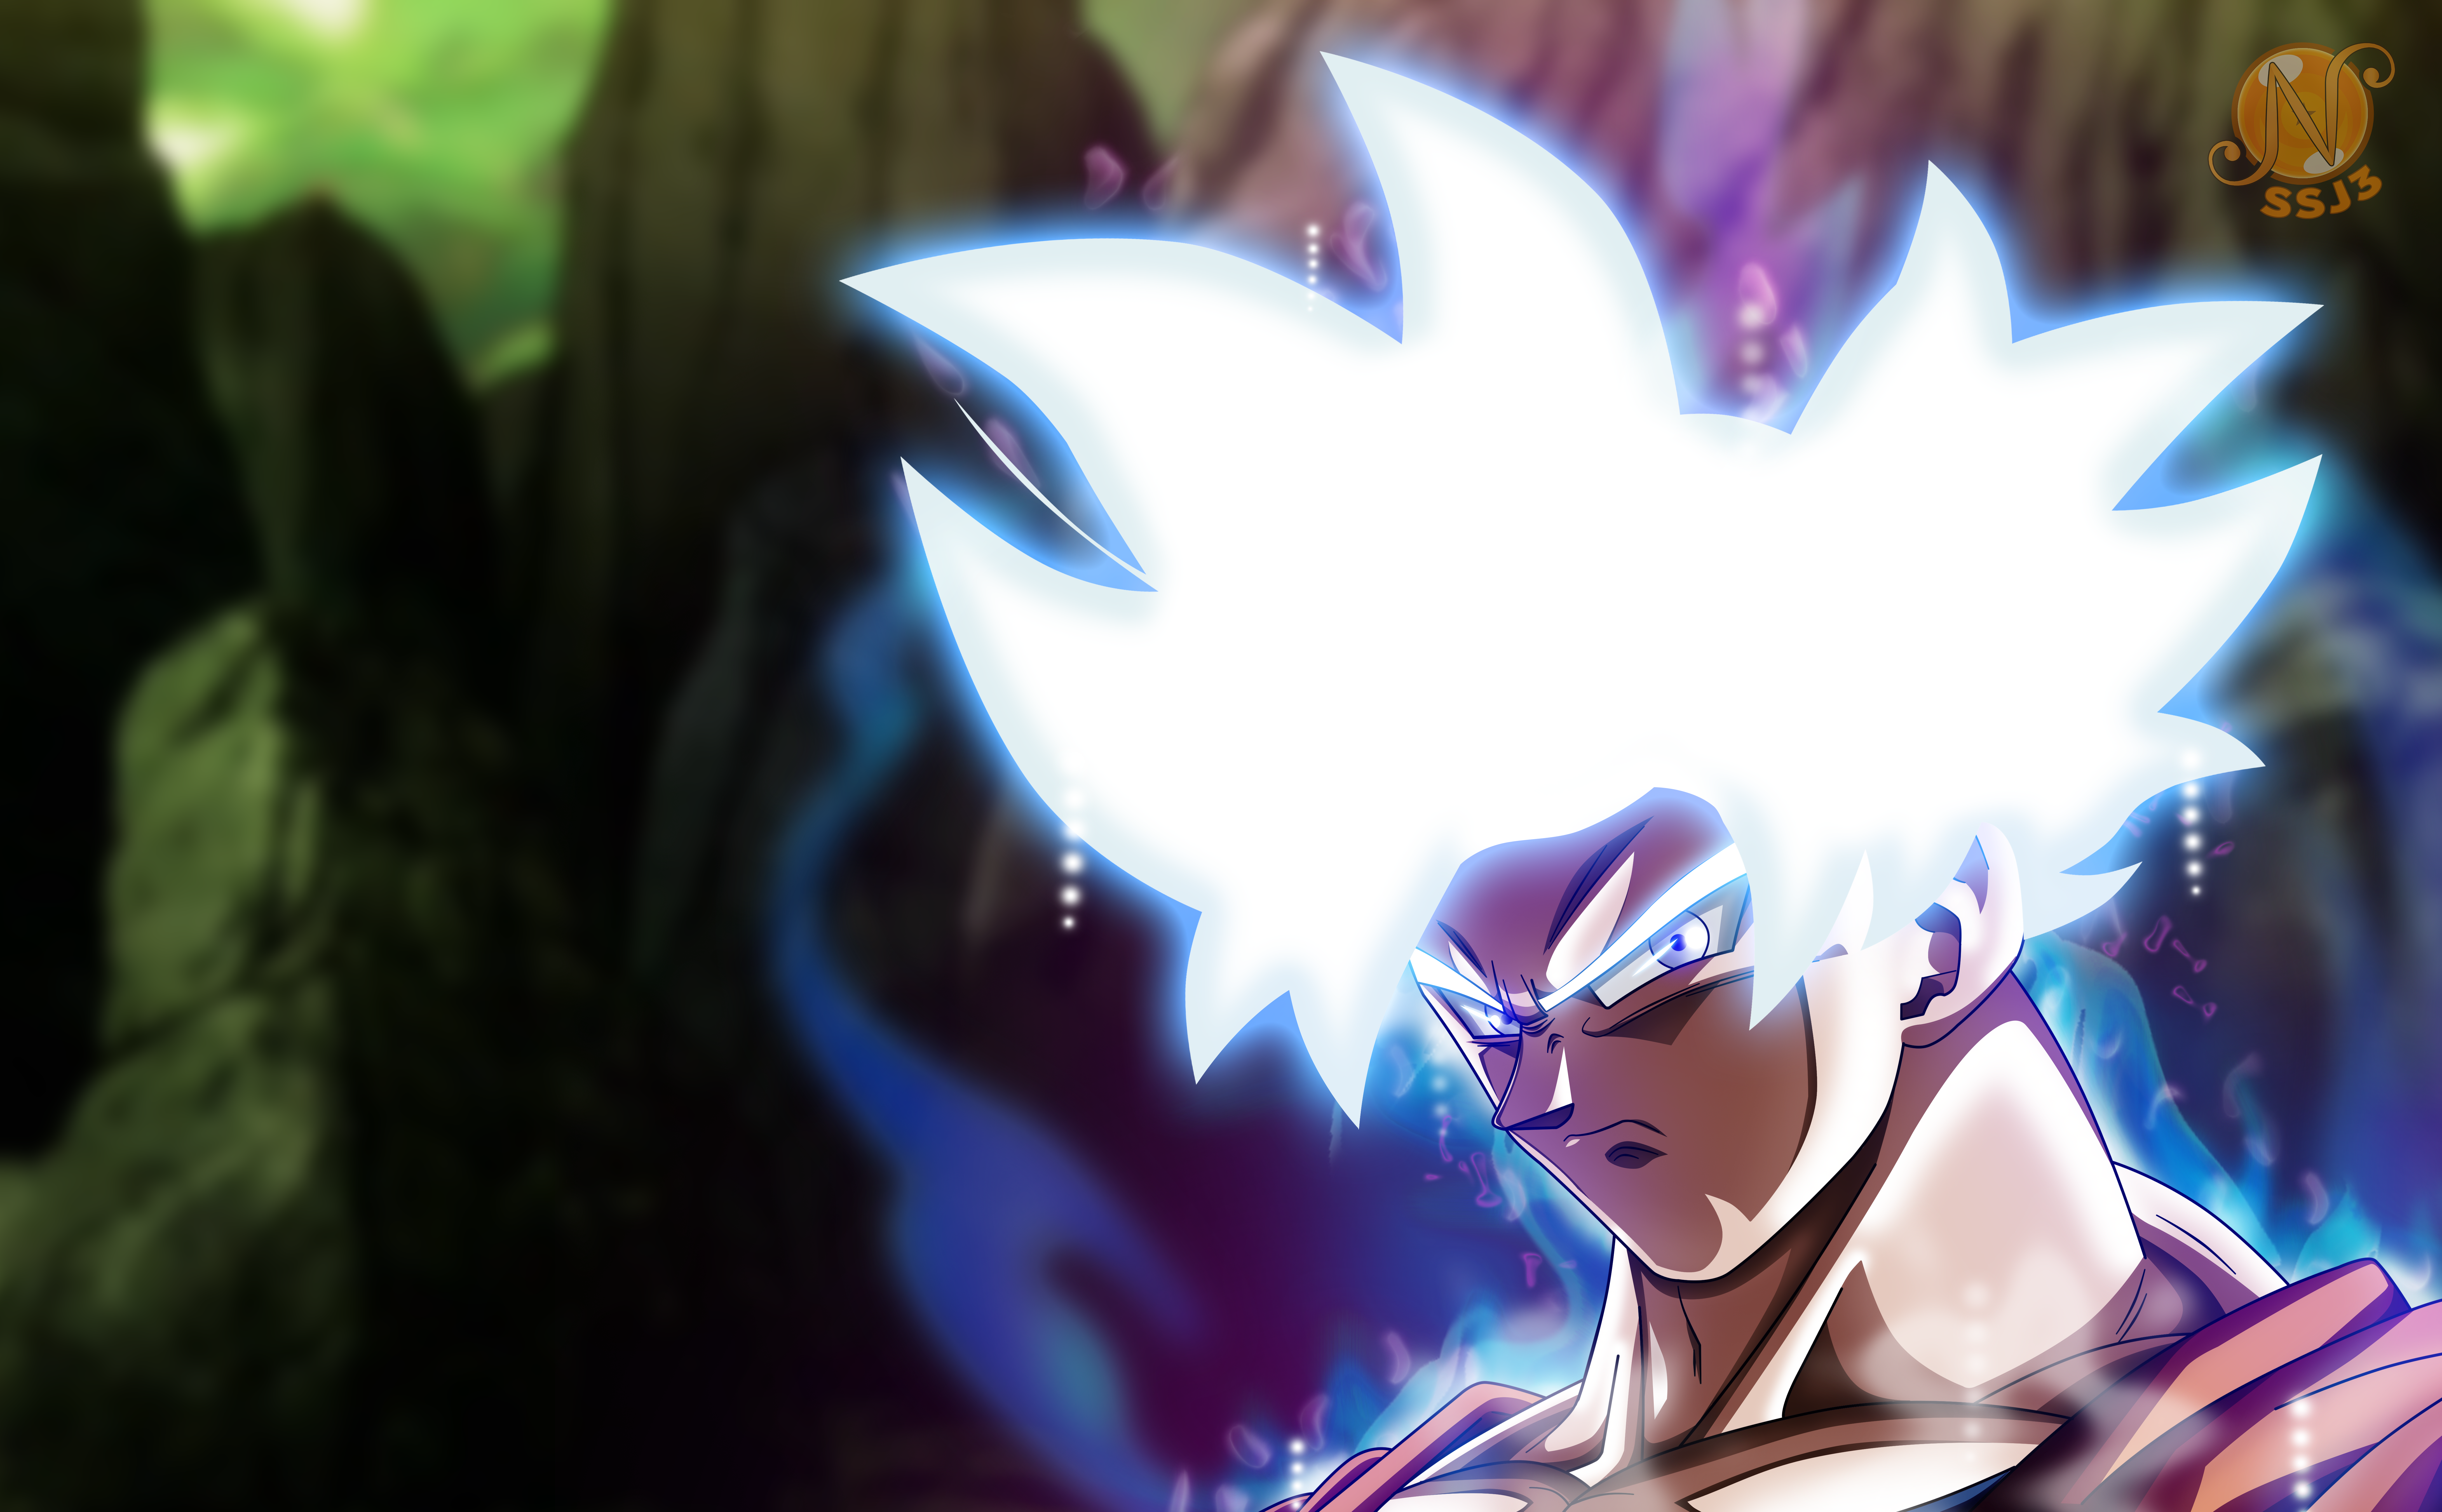 Goku Mastered Ultra Instinct Yuya Takahashi Style By Nourssj3 On